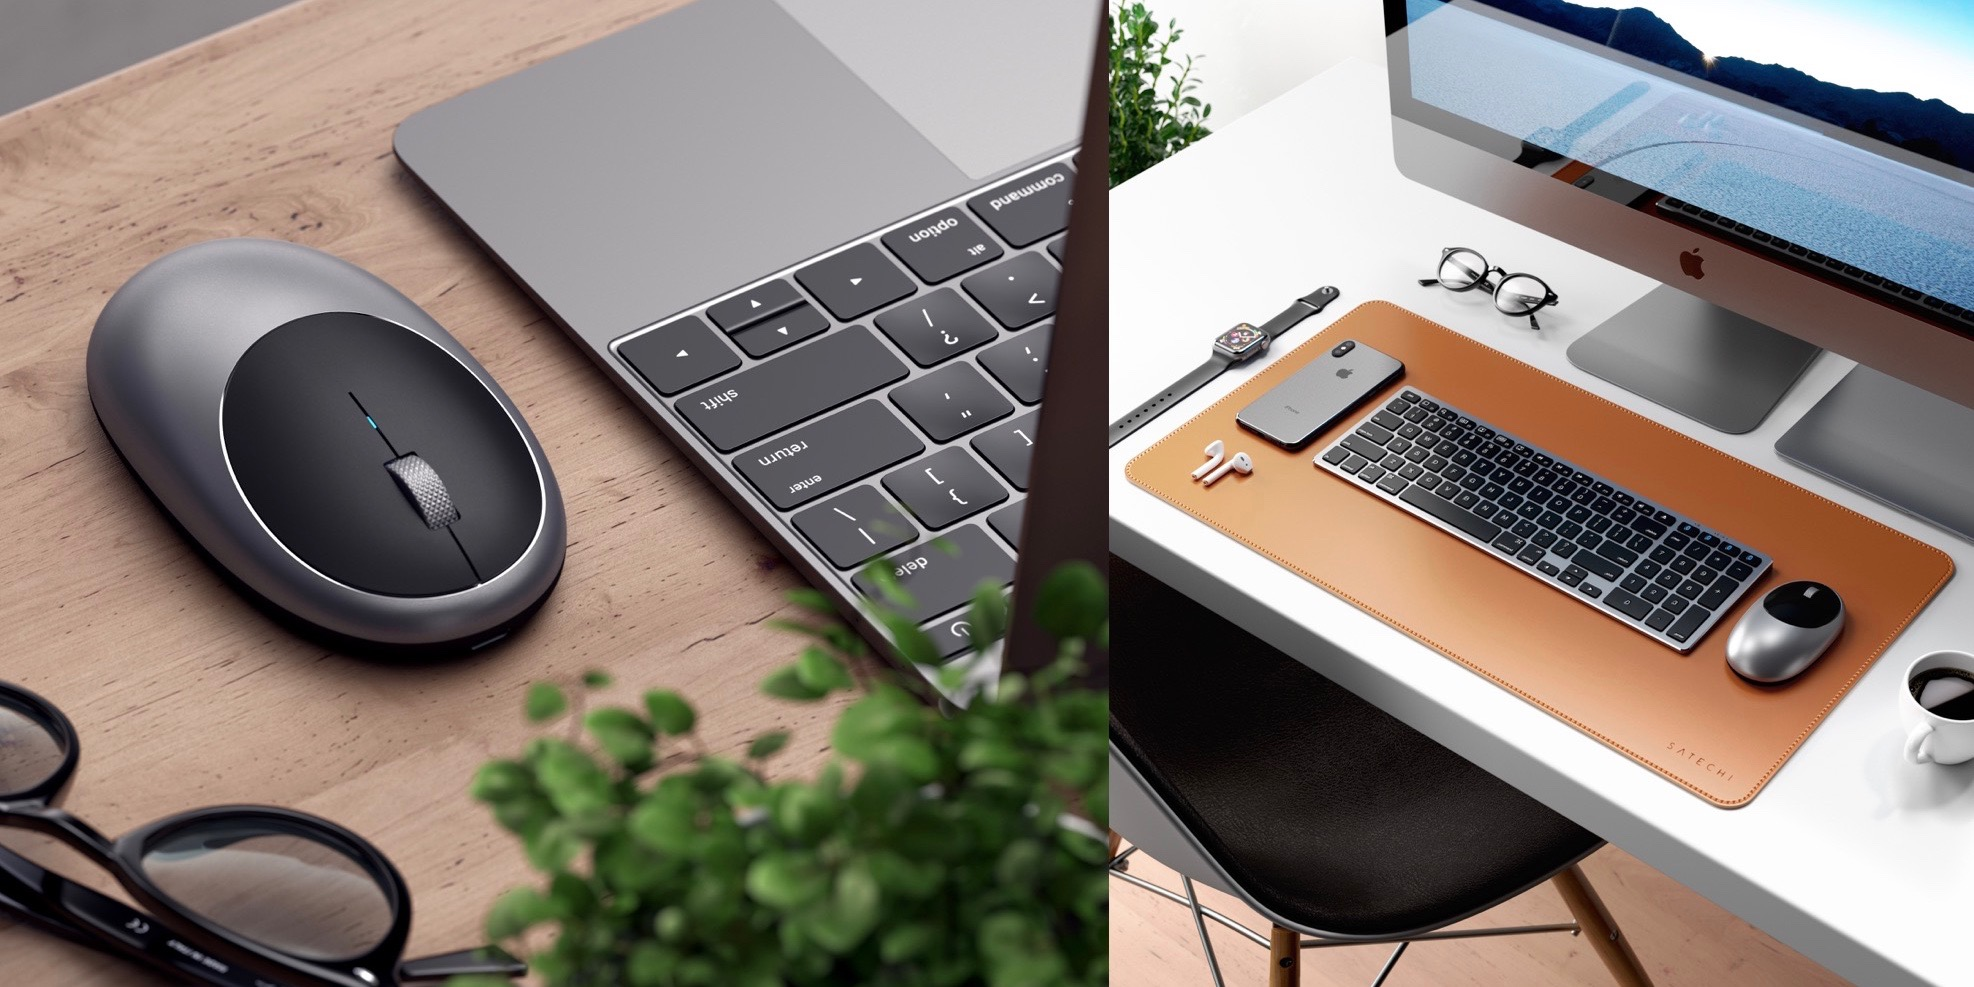 Satechi launches aluminum wireless mouse with USB-C, affordable faux-leather desk pad